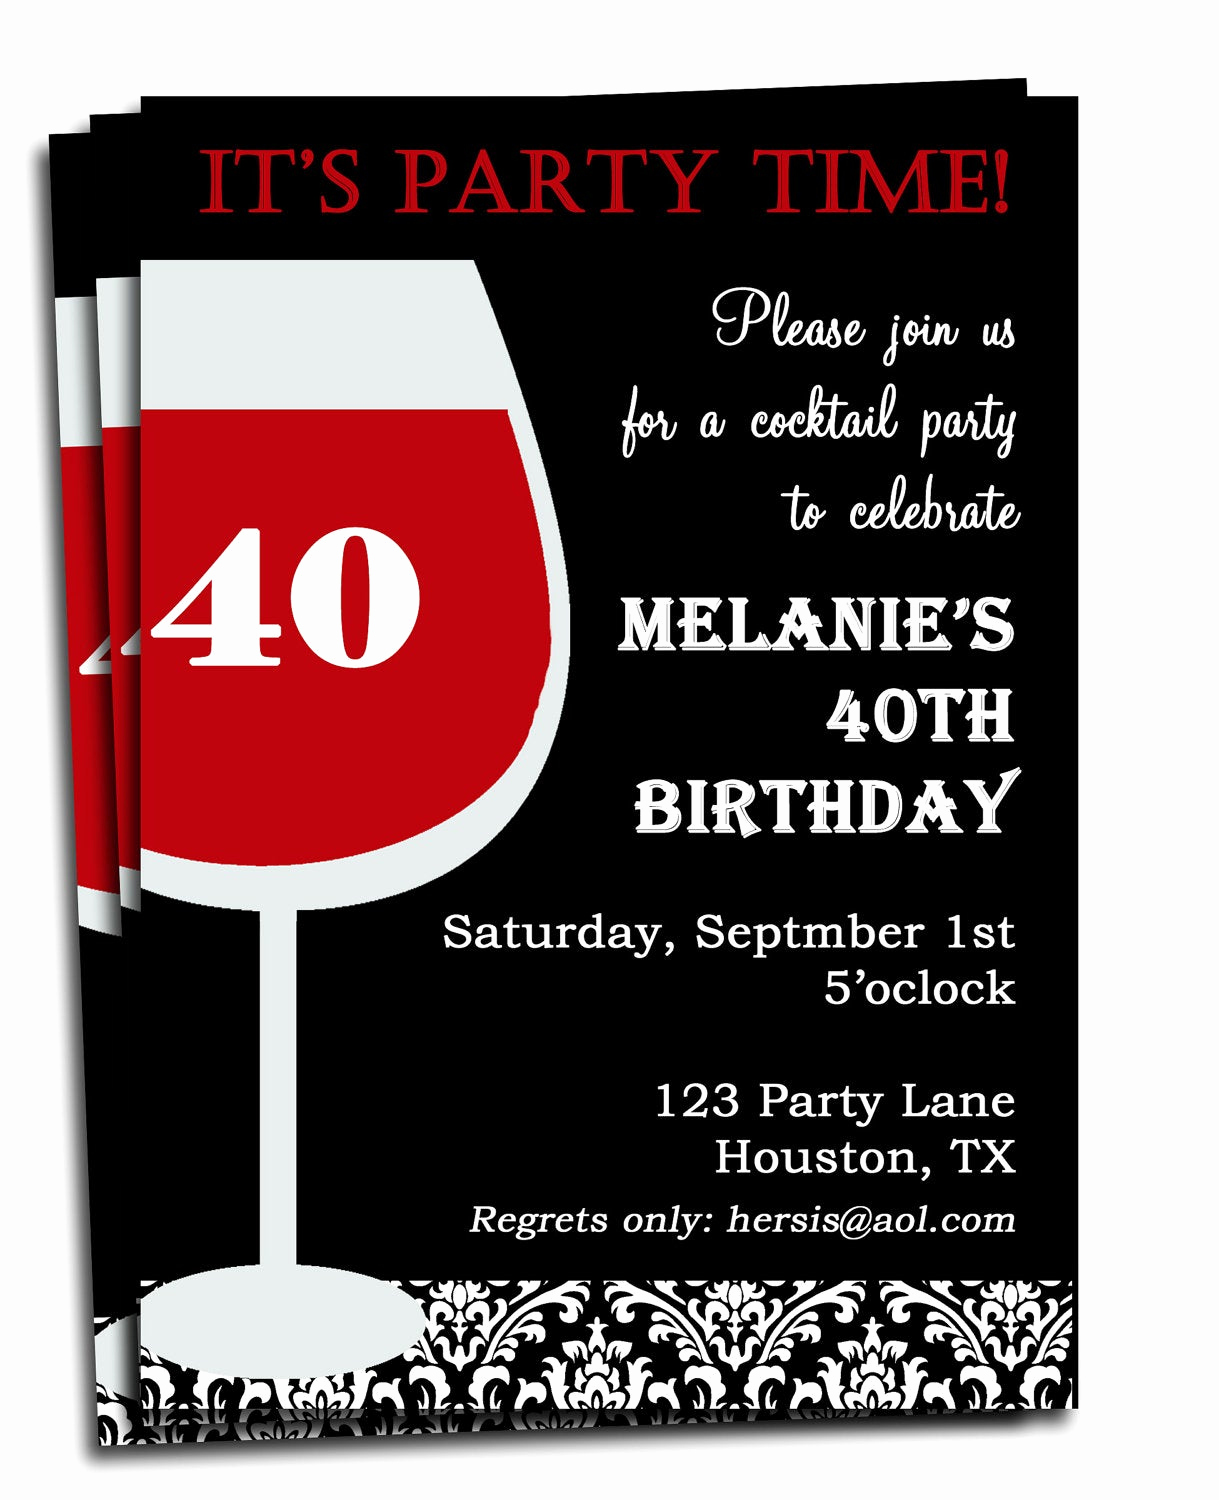 Birthday Invitation Message for Adults New Adult Birthday Invitation Printable Personalized for Your